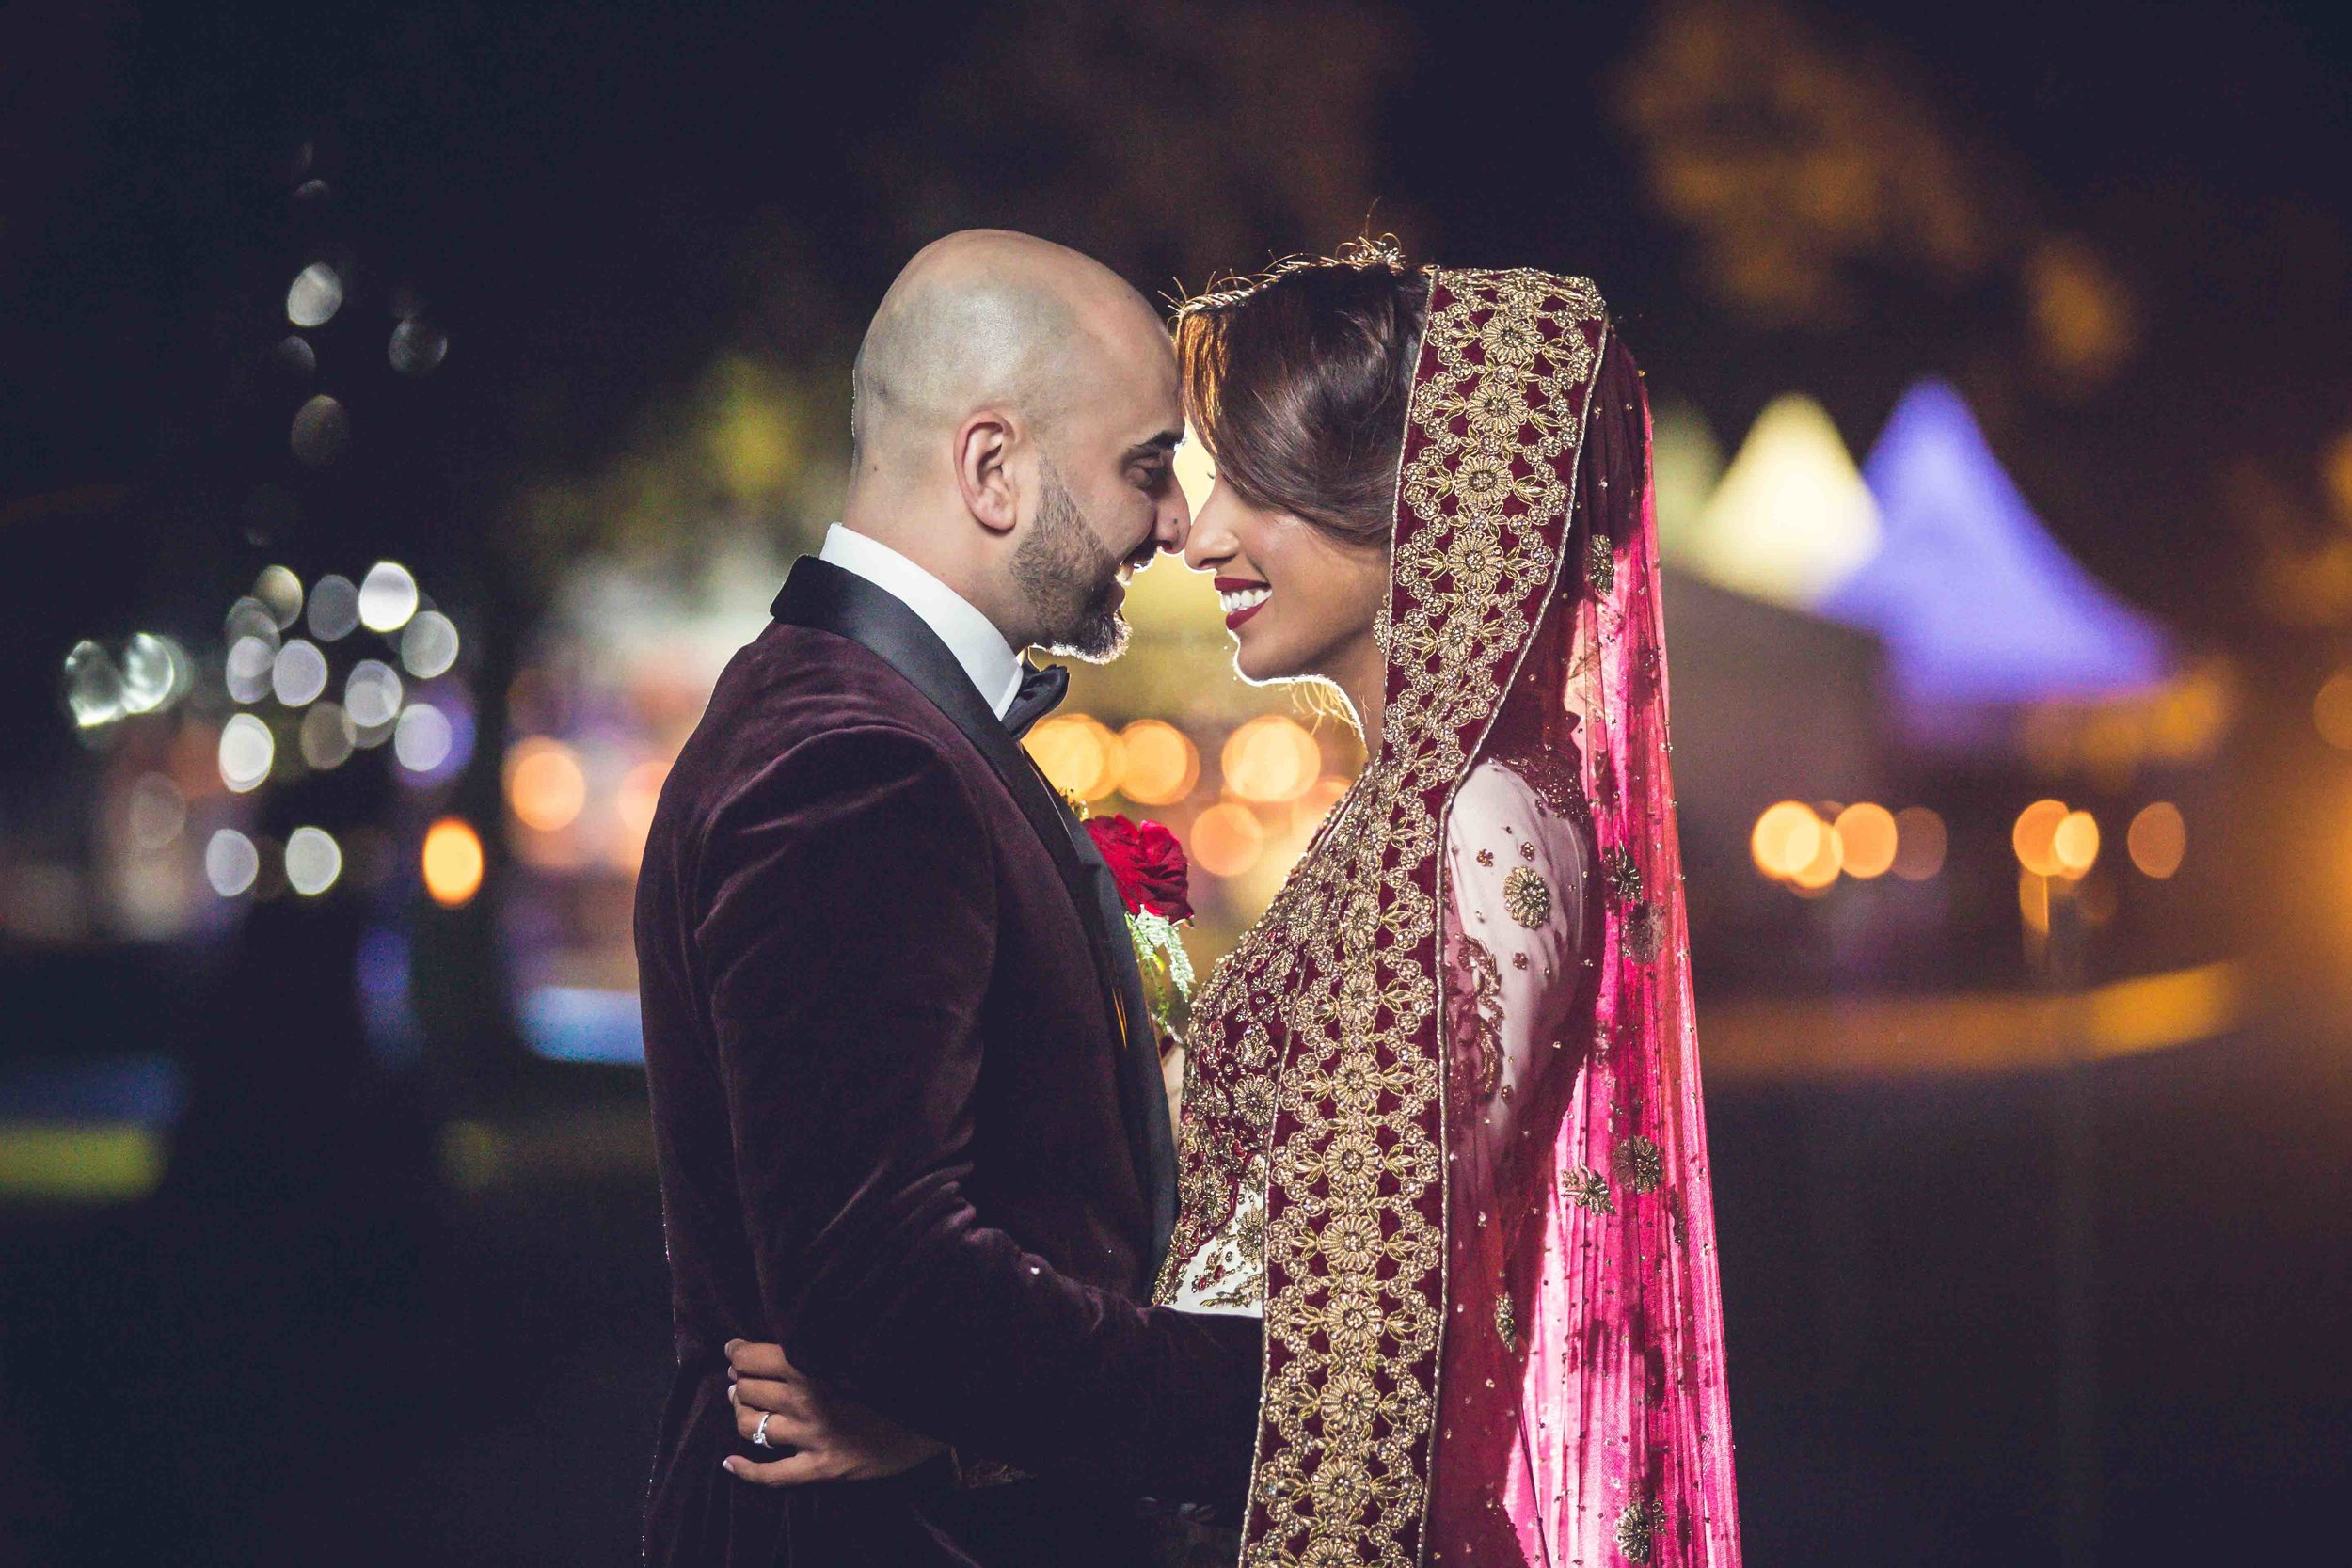 Asian Wedding Photographer Opu Sultan Photography Lyme Park Scotland Edinburgh Glasgow London Manchester Liverpool Birmingham Wedding Photos prewed shoot Azman & Saira Blog-131.jpg